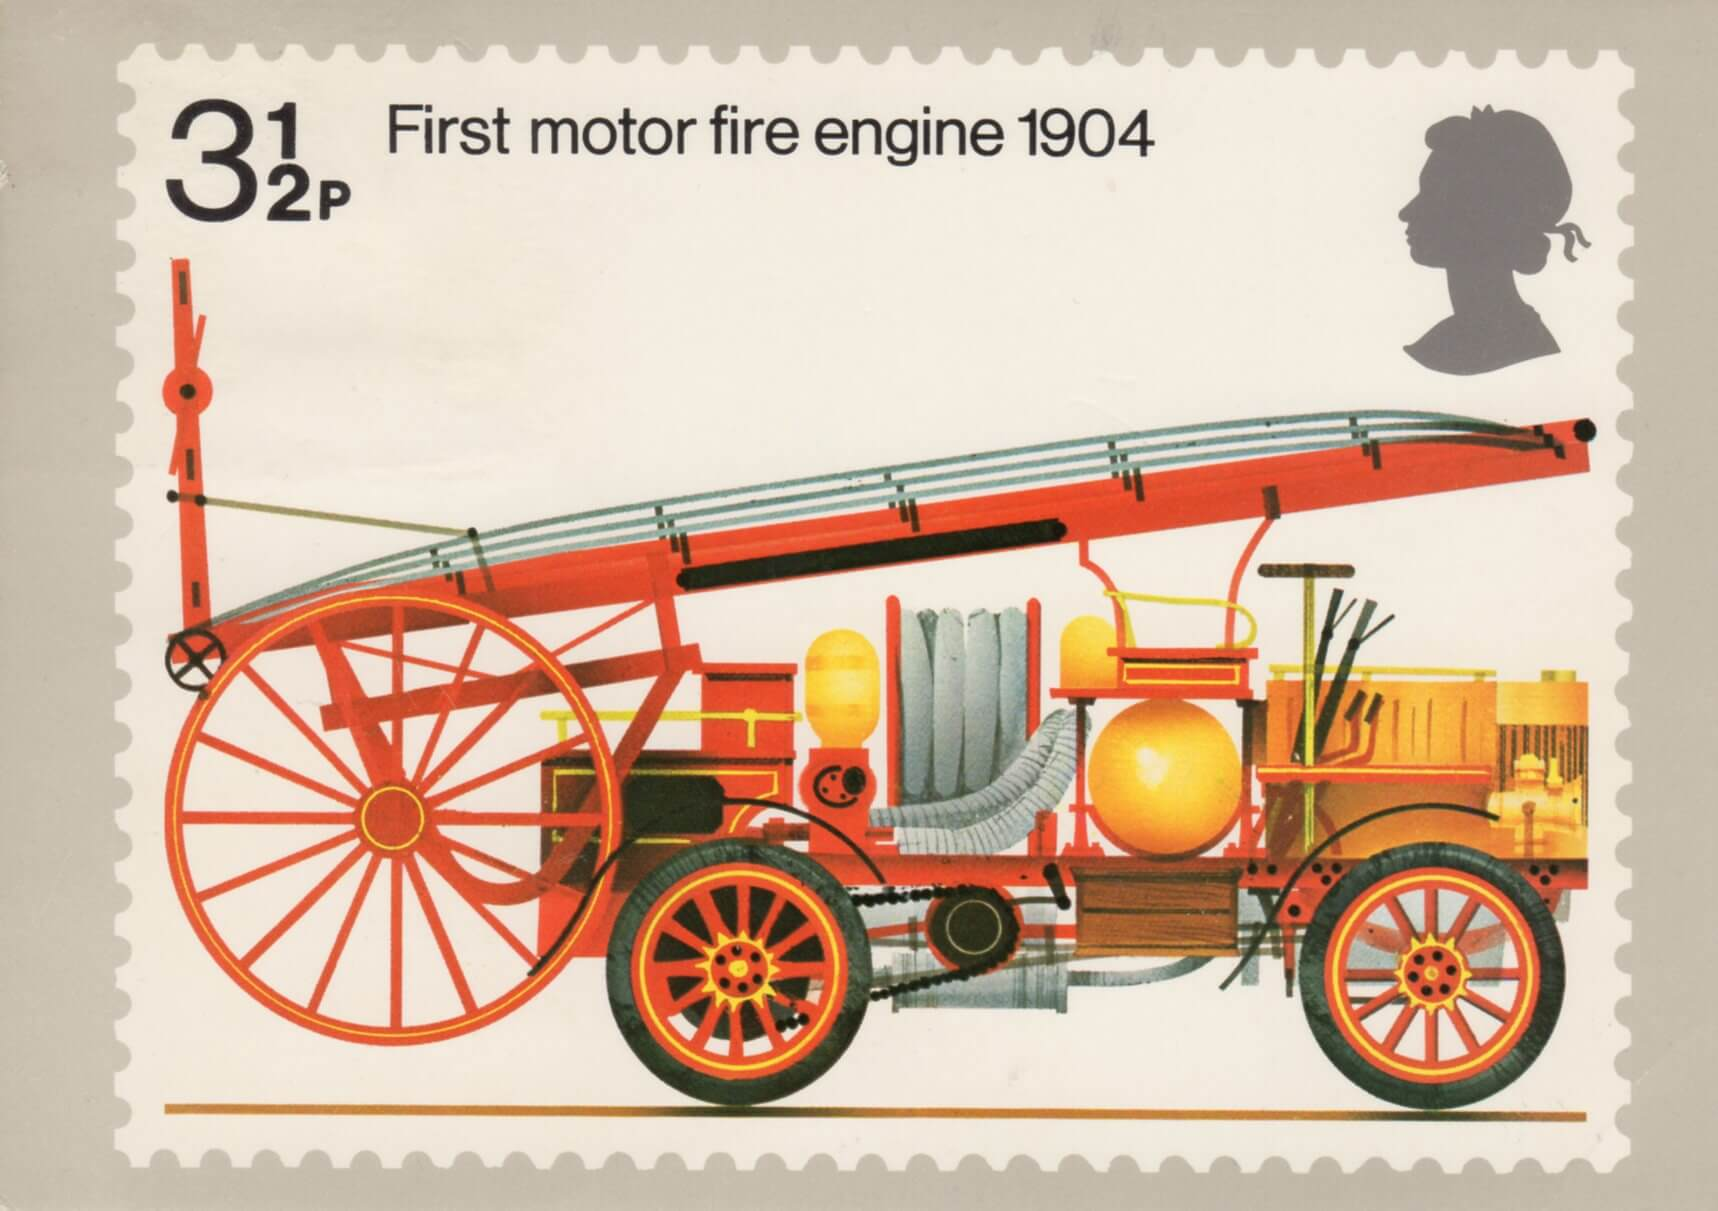 Fire engines unused mint British postage stamps set 1974 Crafts art frame collect Fire-engines  1766 to 1904 Fire service scan enlarged